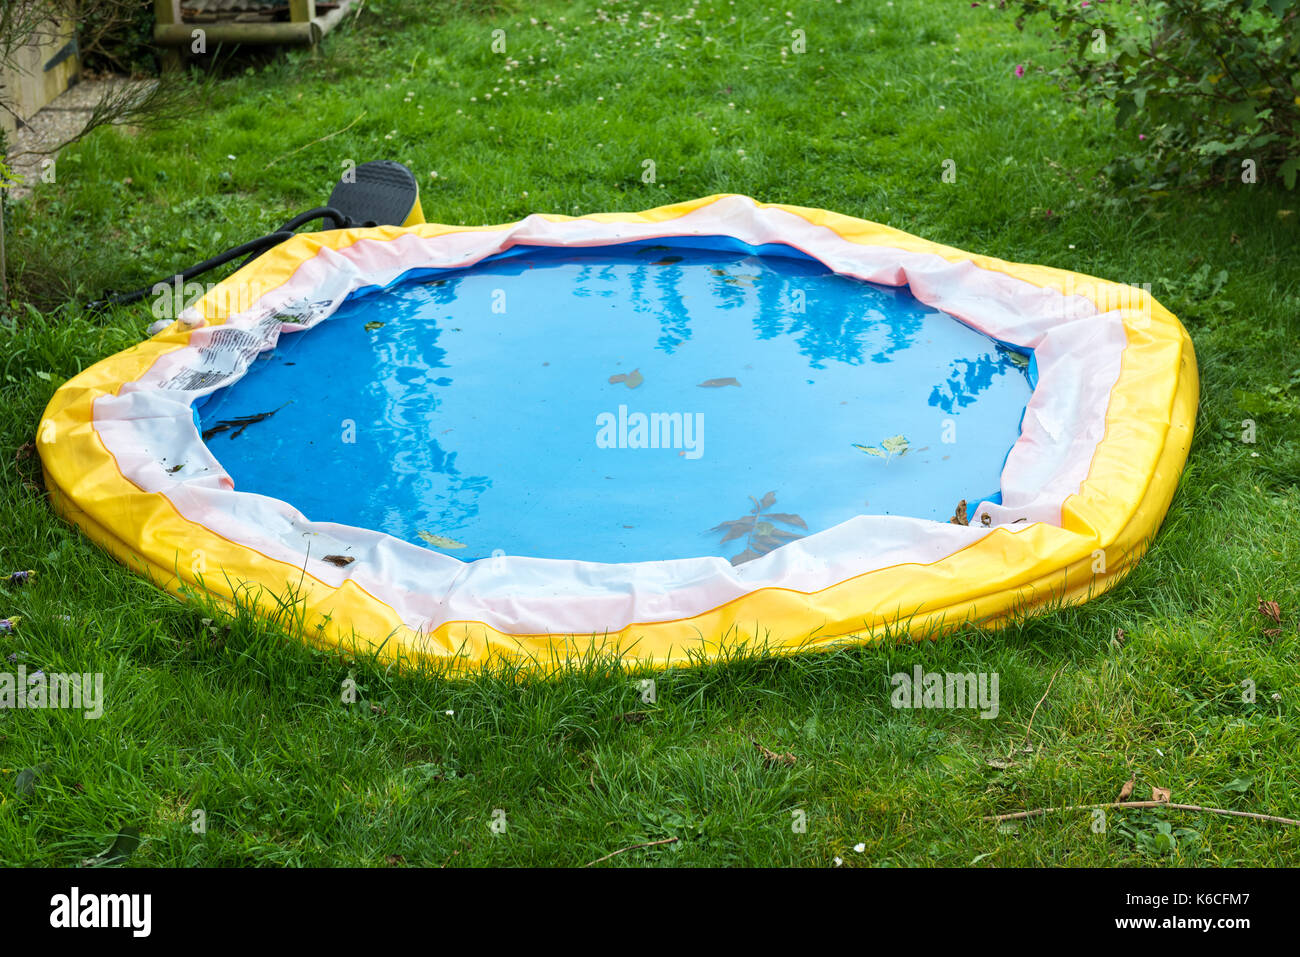 deflated swimming pool stock photos deflated swimming pool stock images alamy. Black Bedroom Furniture Sets. Home Design Ideas